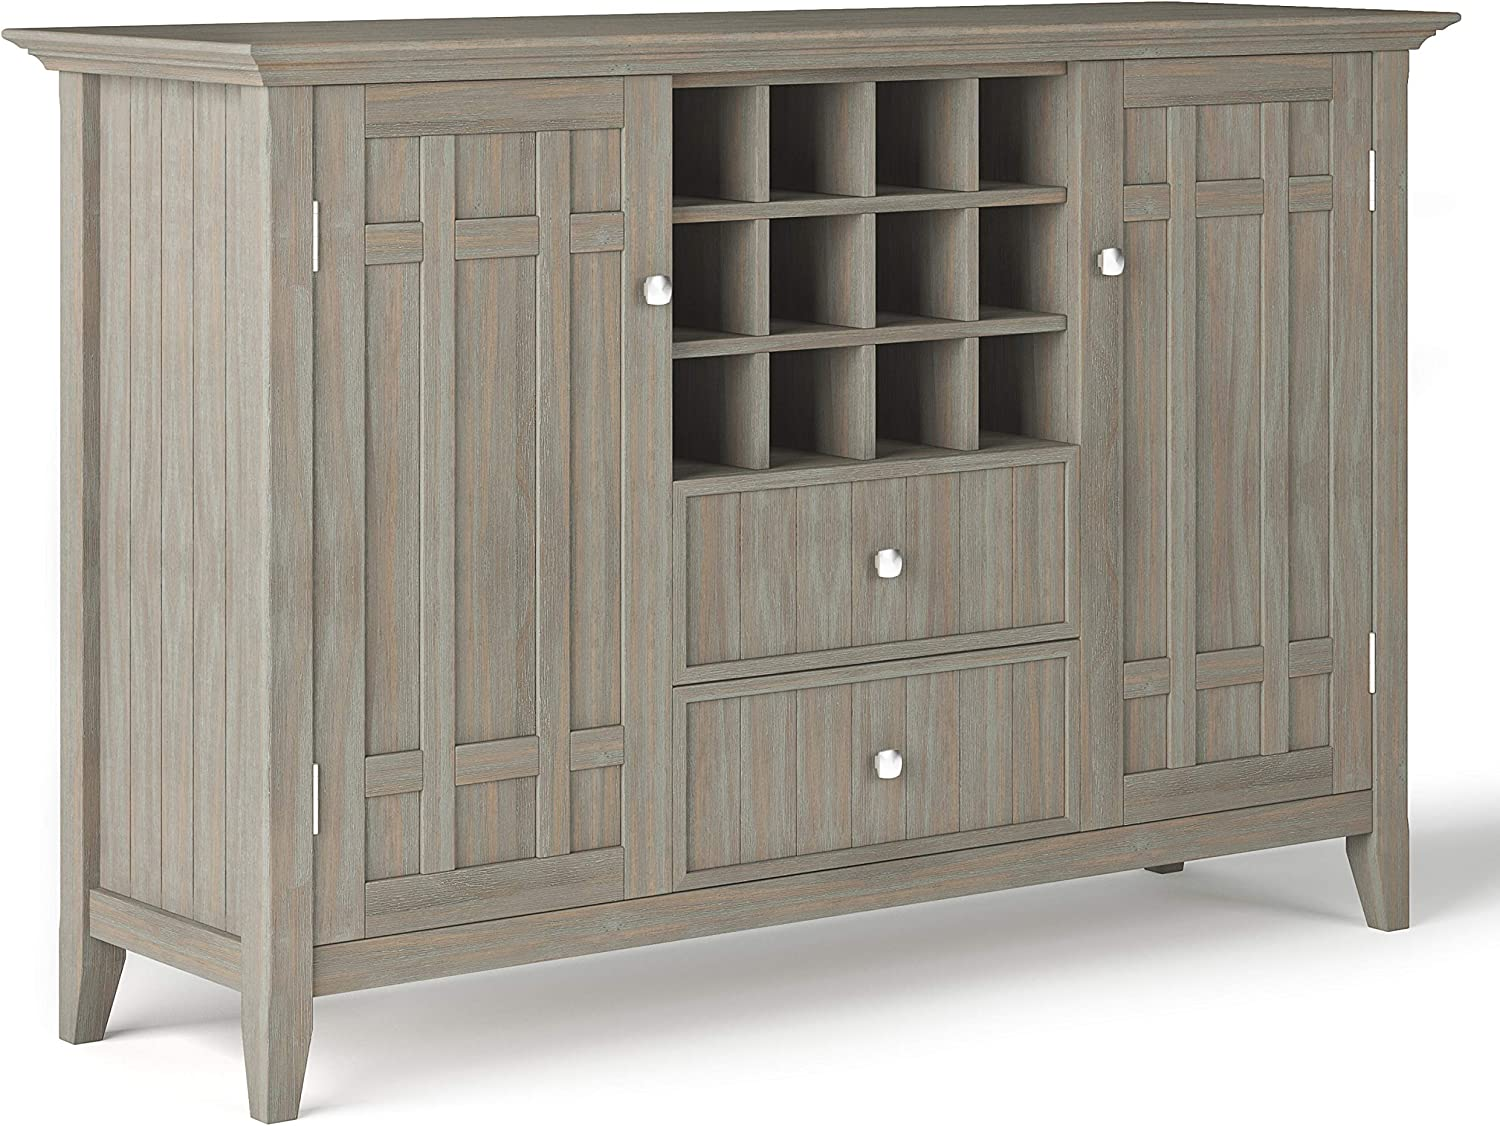 Simpli Home Bedford Solid Wood 54 inch Wide Rustic Sideboard Buffet Credenza and Winerack in Dark Tobacco Brown